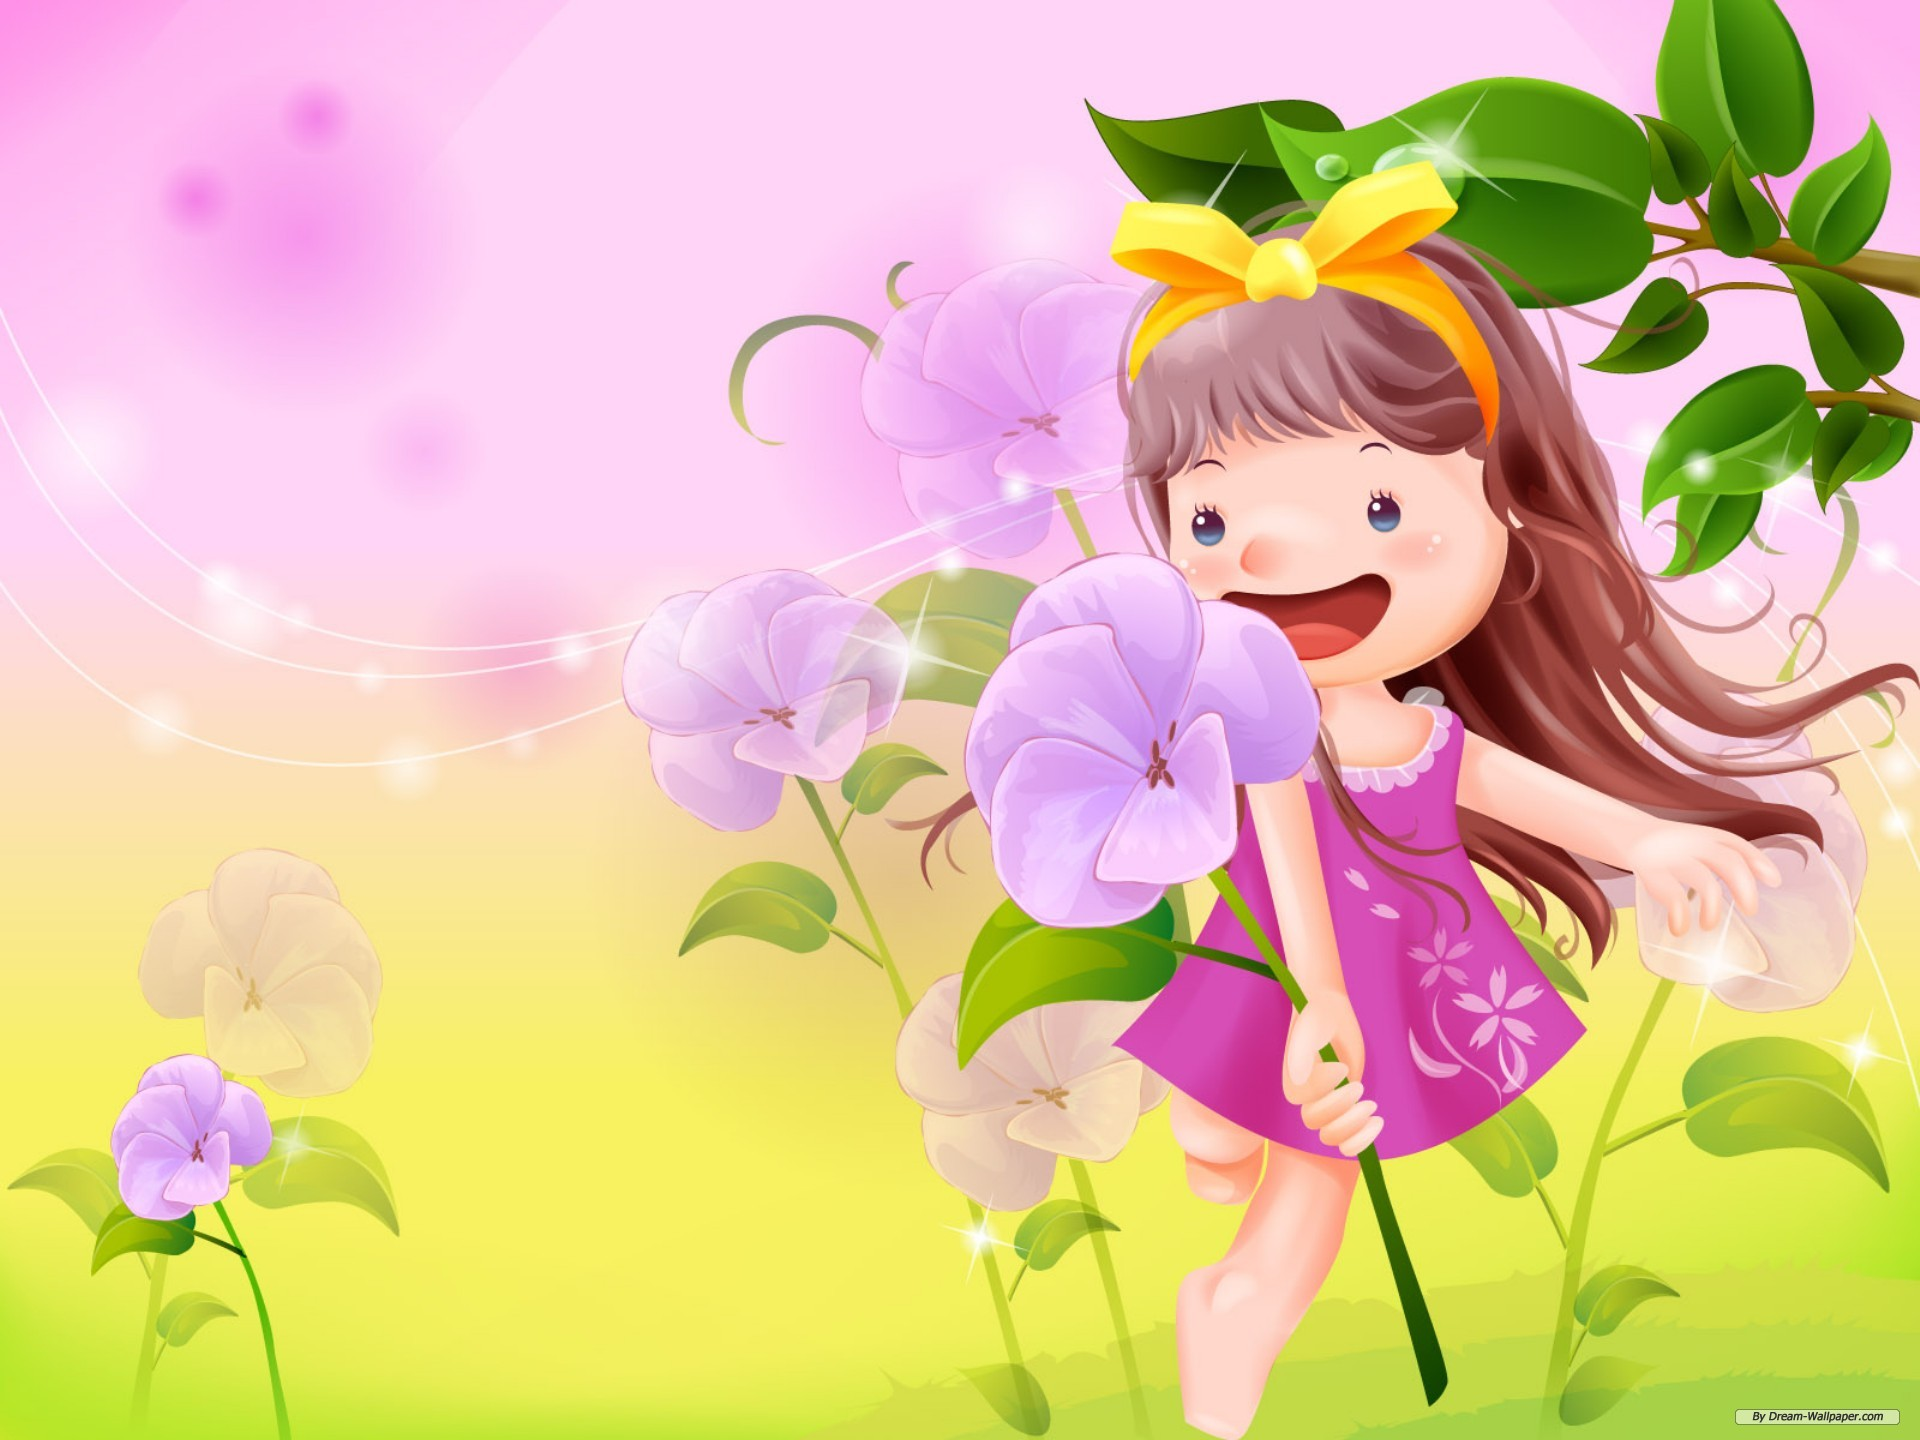 Cartoon wallpaper   Vector childhood 1 wallpaper   1920x1440 wallpaper 1920x1440